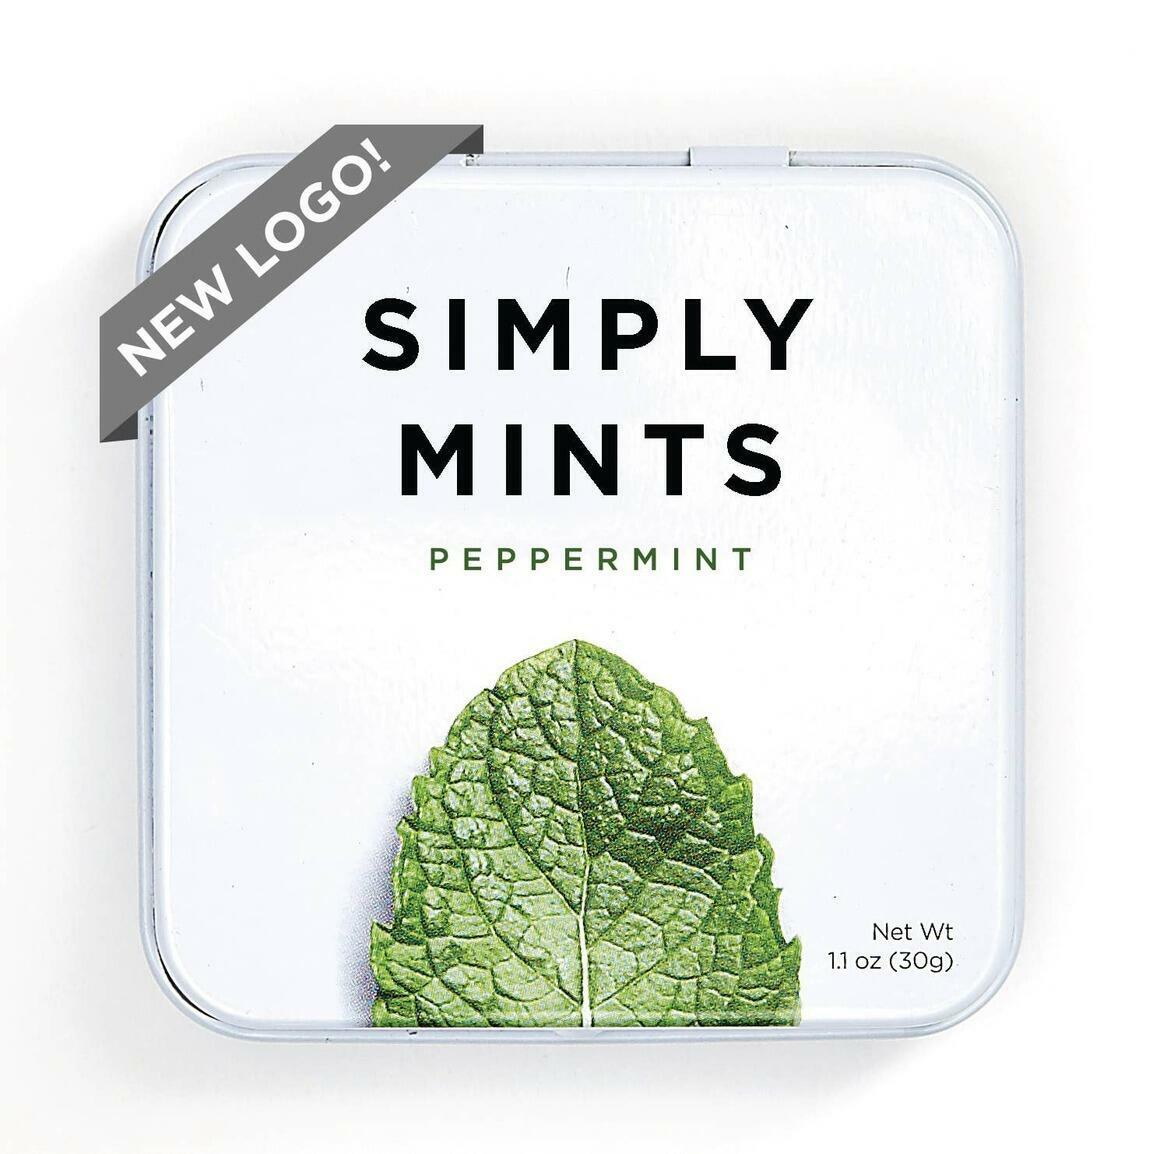 Simply Mints: Peppermint | Trada Marketplace